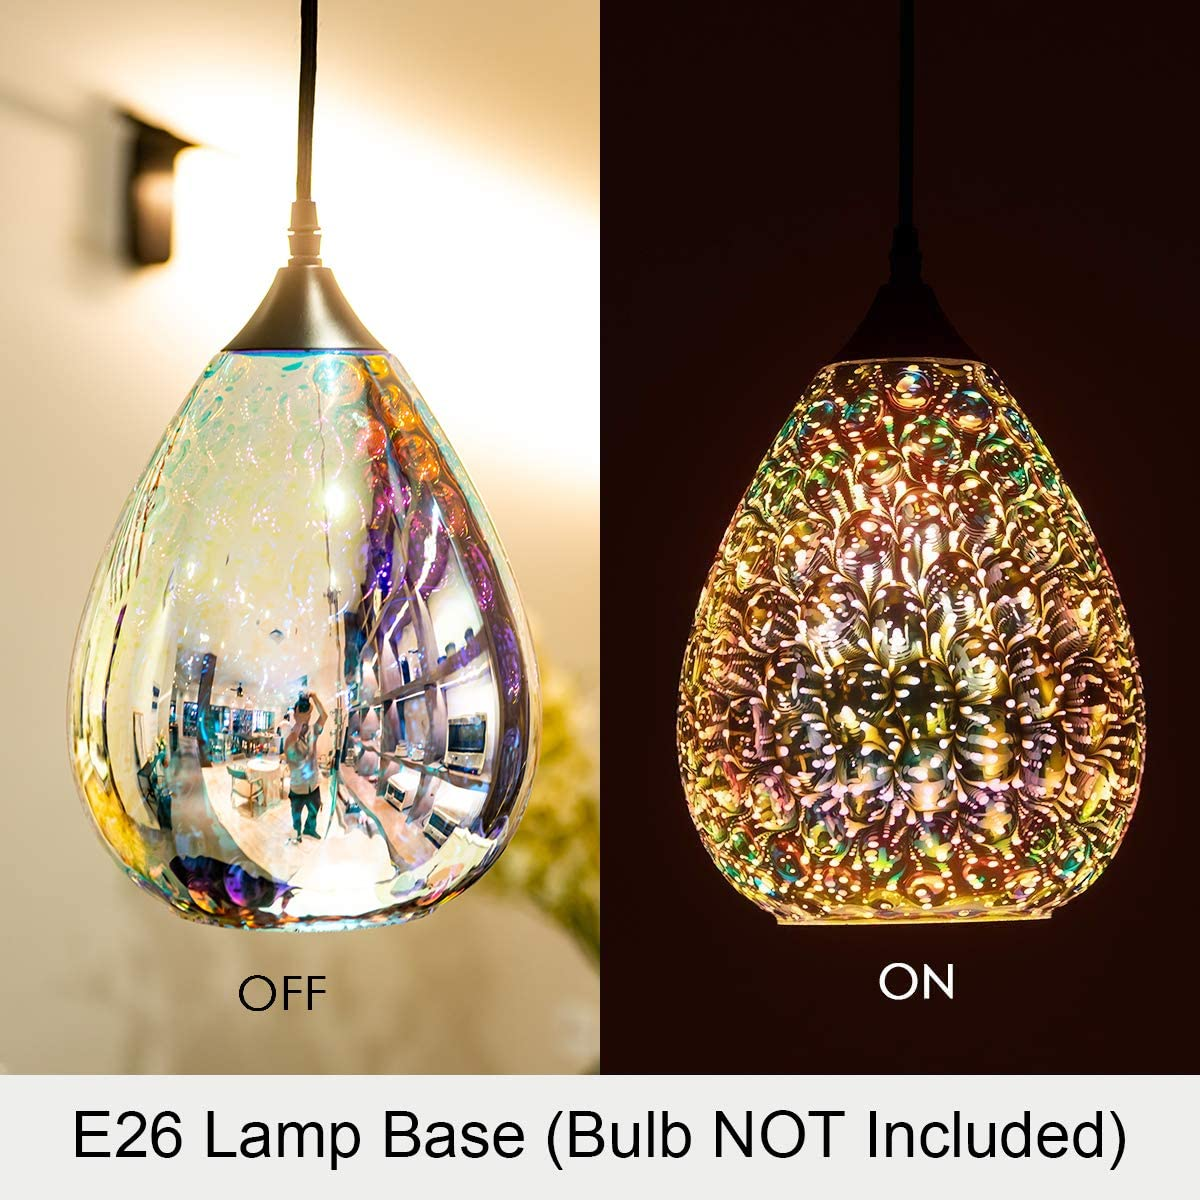 3d Glass Pendant Light, Modern Kitchen Pendant Lighting with Colored Hammered Shade, 3D Reflection Glass Hanging Pendant Ceiling Light Fixture for Living Room Bedroom Island Restaurant Bar, 8in Chrome - -